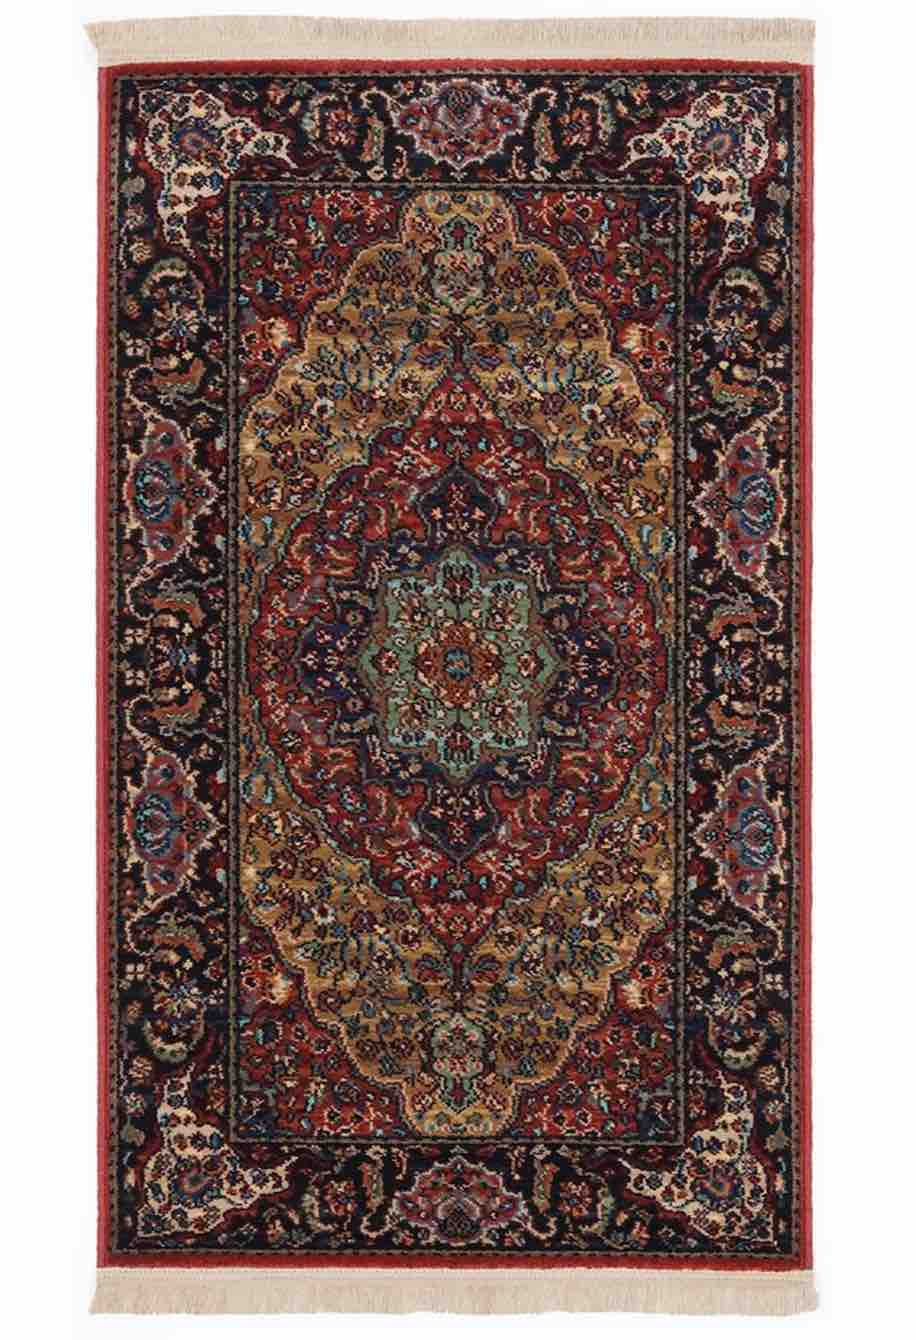 Original Karastan Medallion Kirman Rug